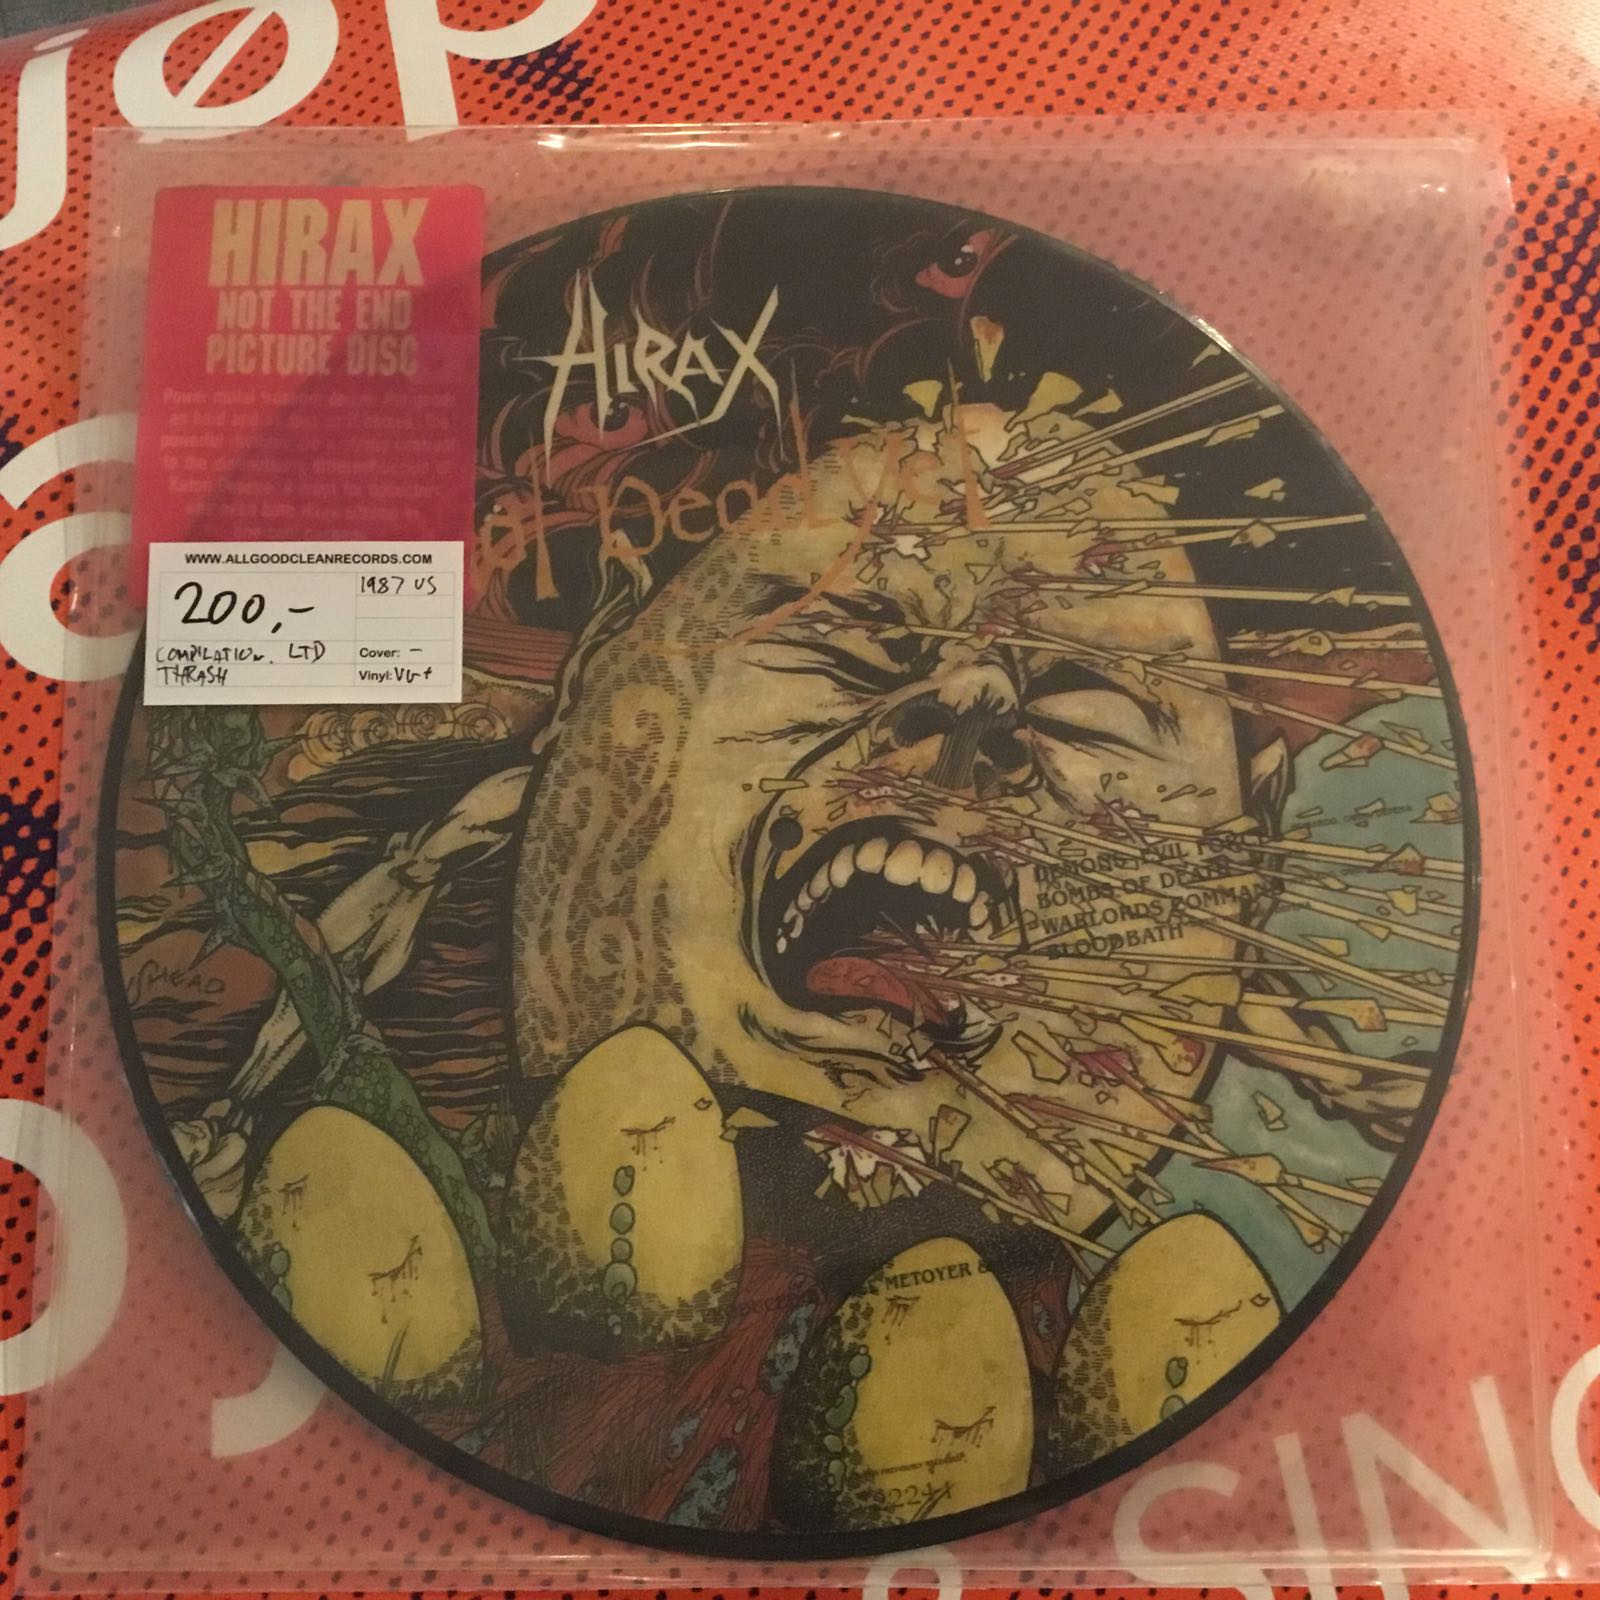 Hirax – Not The End [LP Picture Disc] (2. hand)